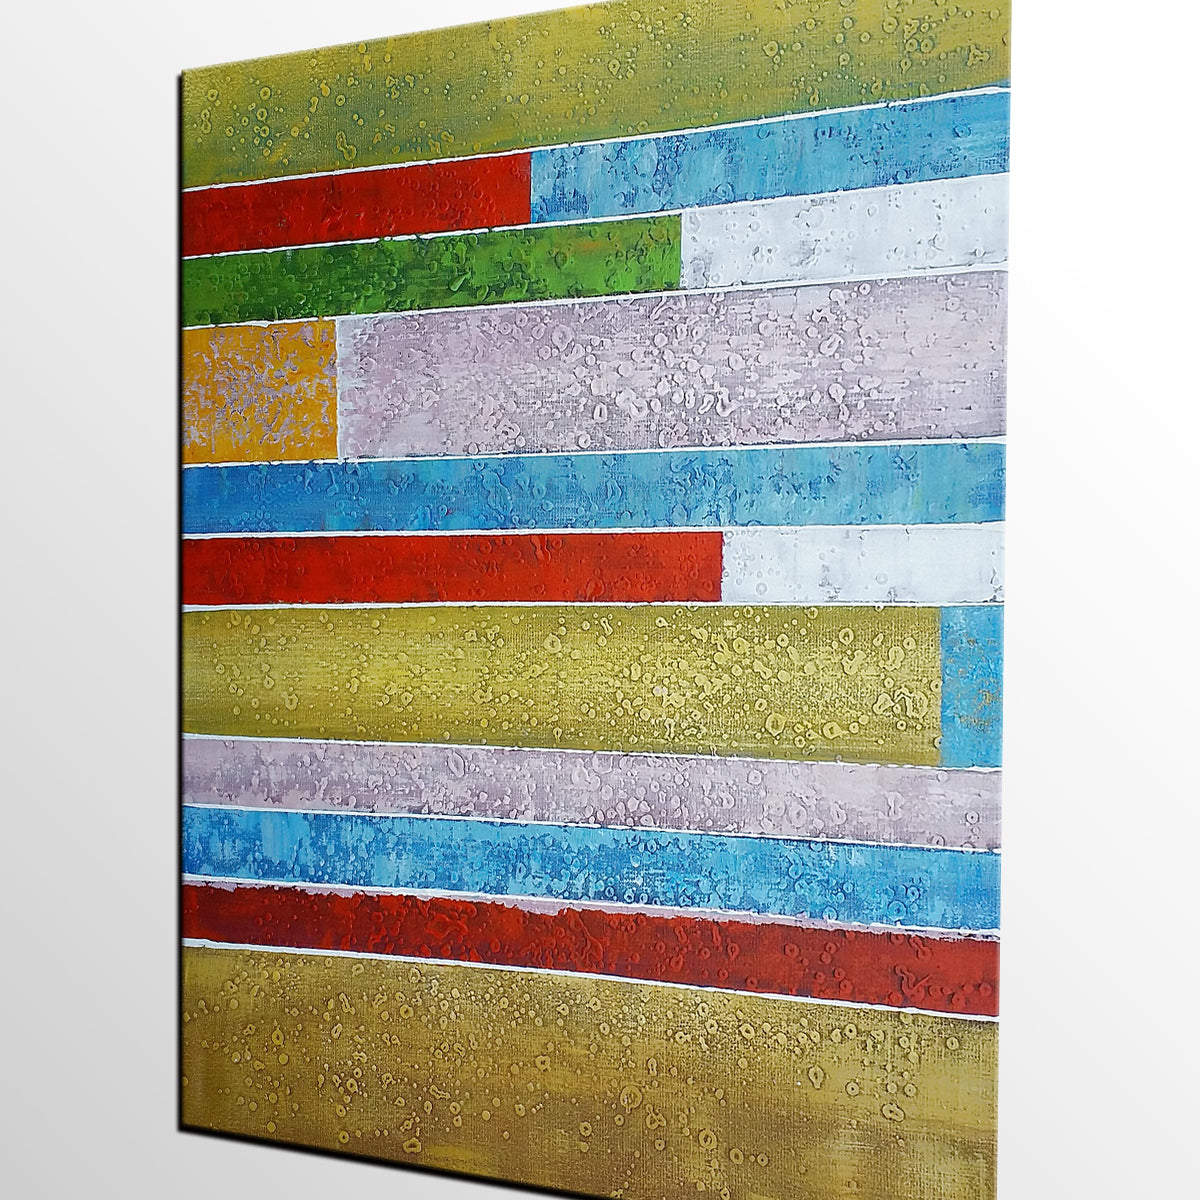 Original Painting, Abstract Painting, Large Art, Canvas Art, Wall Art, Original Artwork, Canvas Painting, Acrylic Art, Art on Canvas 160